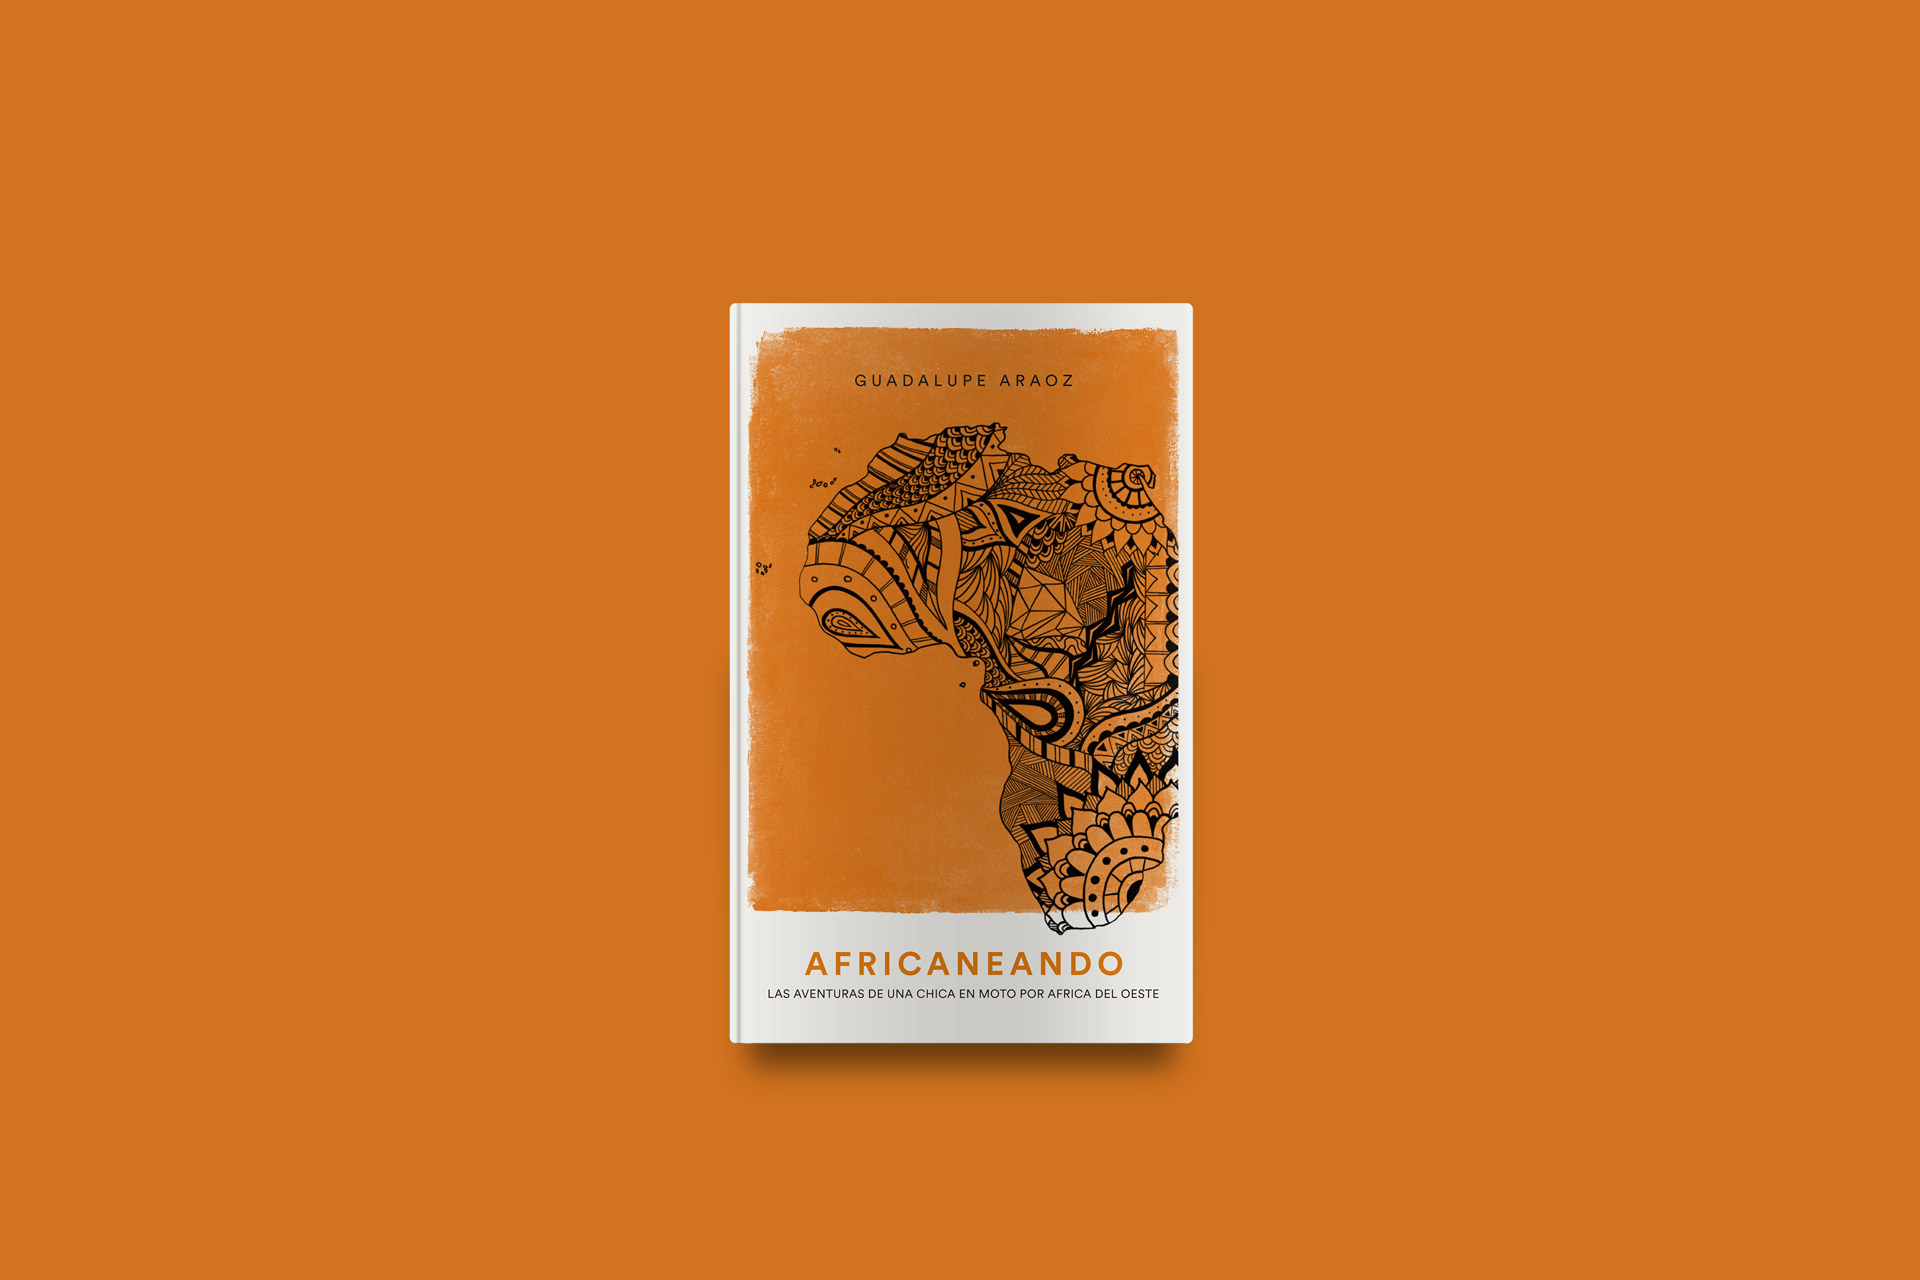 Libro digital Africaneando Africa Occidental